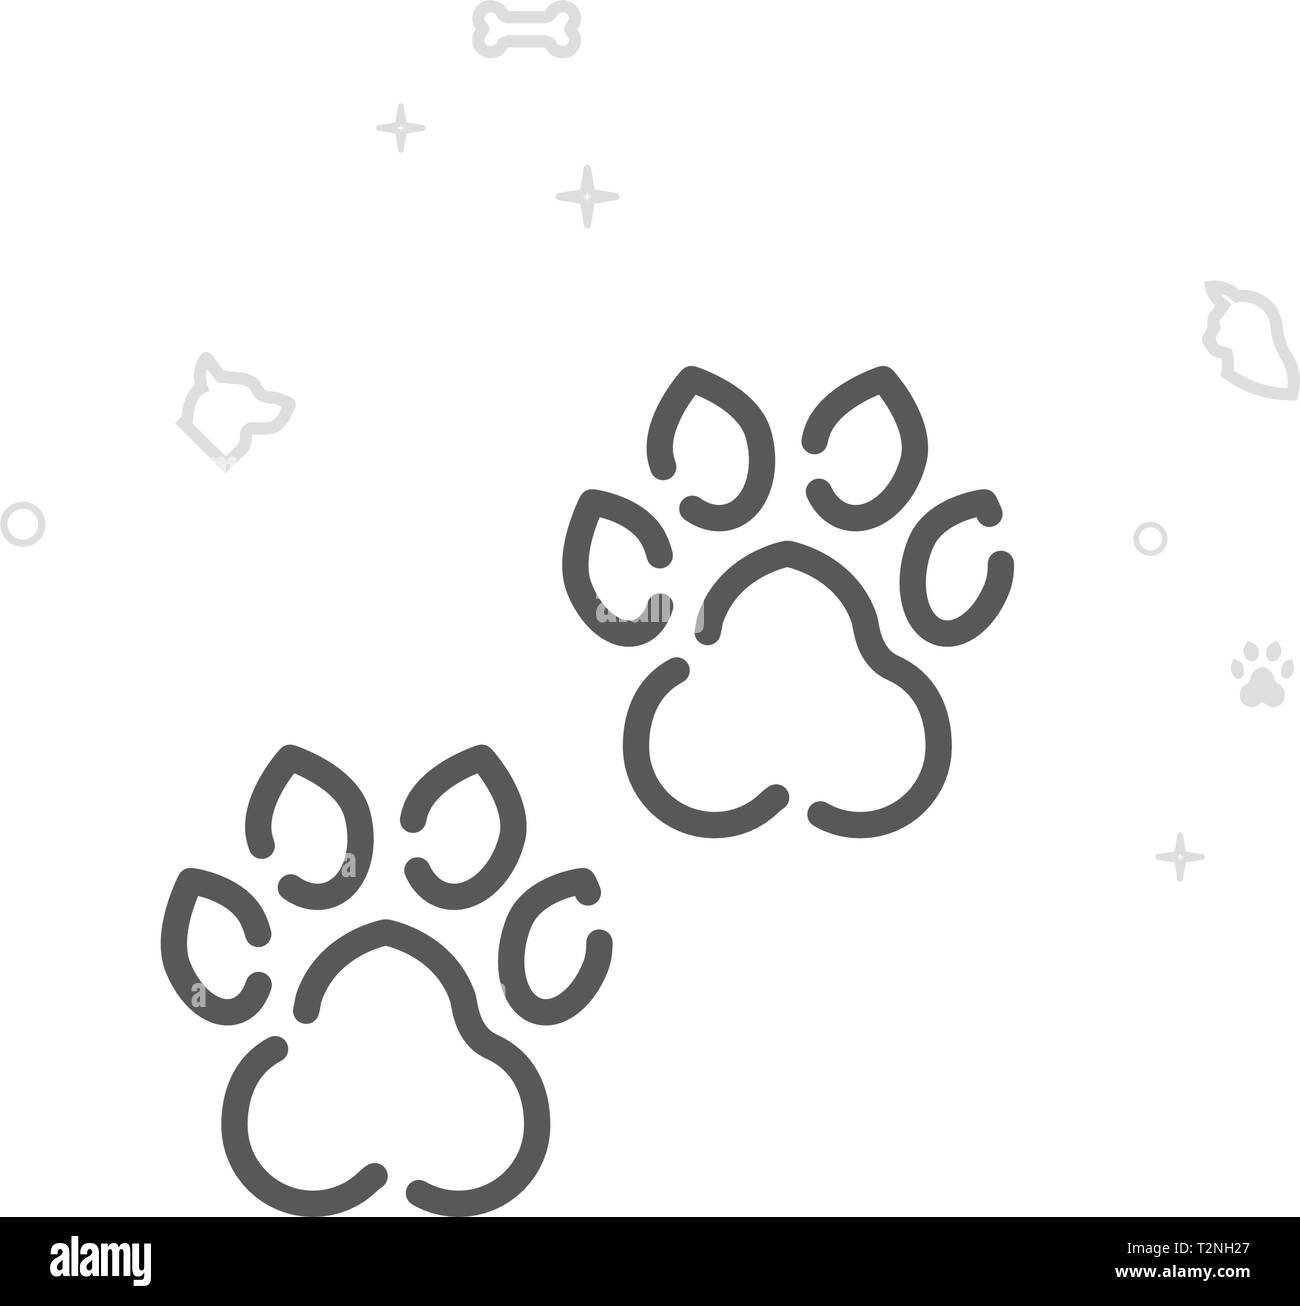 Animal Tracks, Footprint Vector Line Icon. Pet Supplies Symbol, Pictogram, Sign. Light Abstract Geometric Background. Editable Stroke. - Stock Image